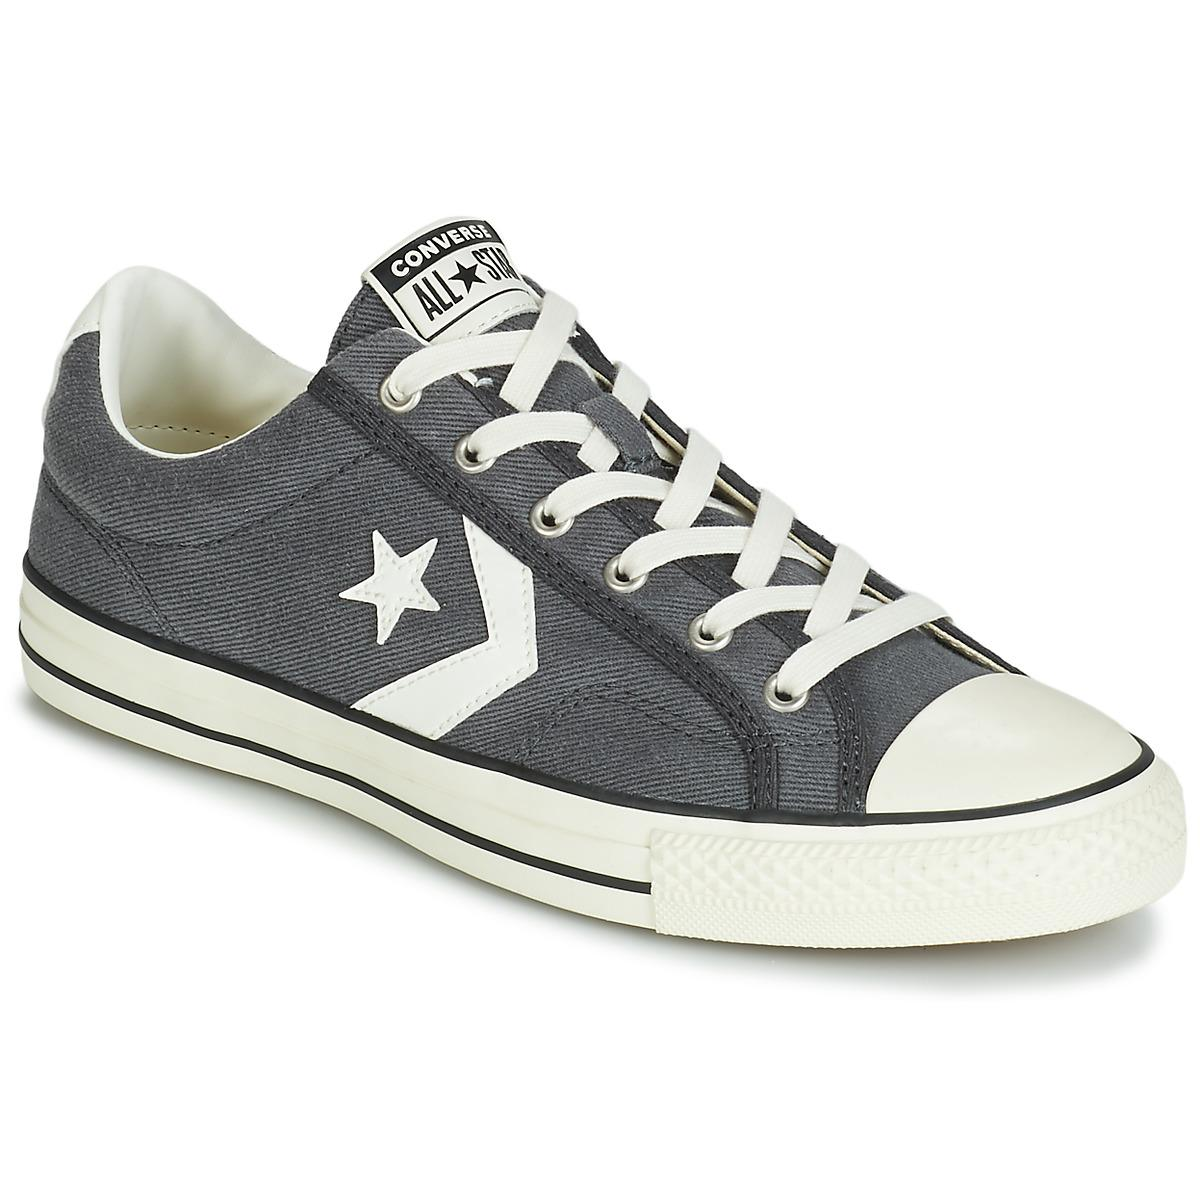 714ddfc31e1 Converse Star Player Vintage Canvas Ox Women s Shoes (trainers) In ...